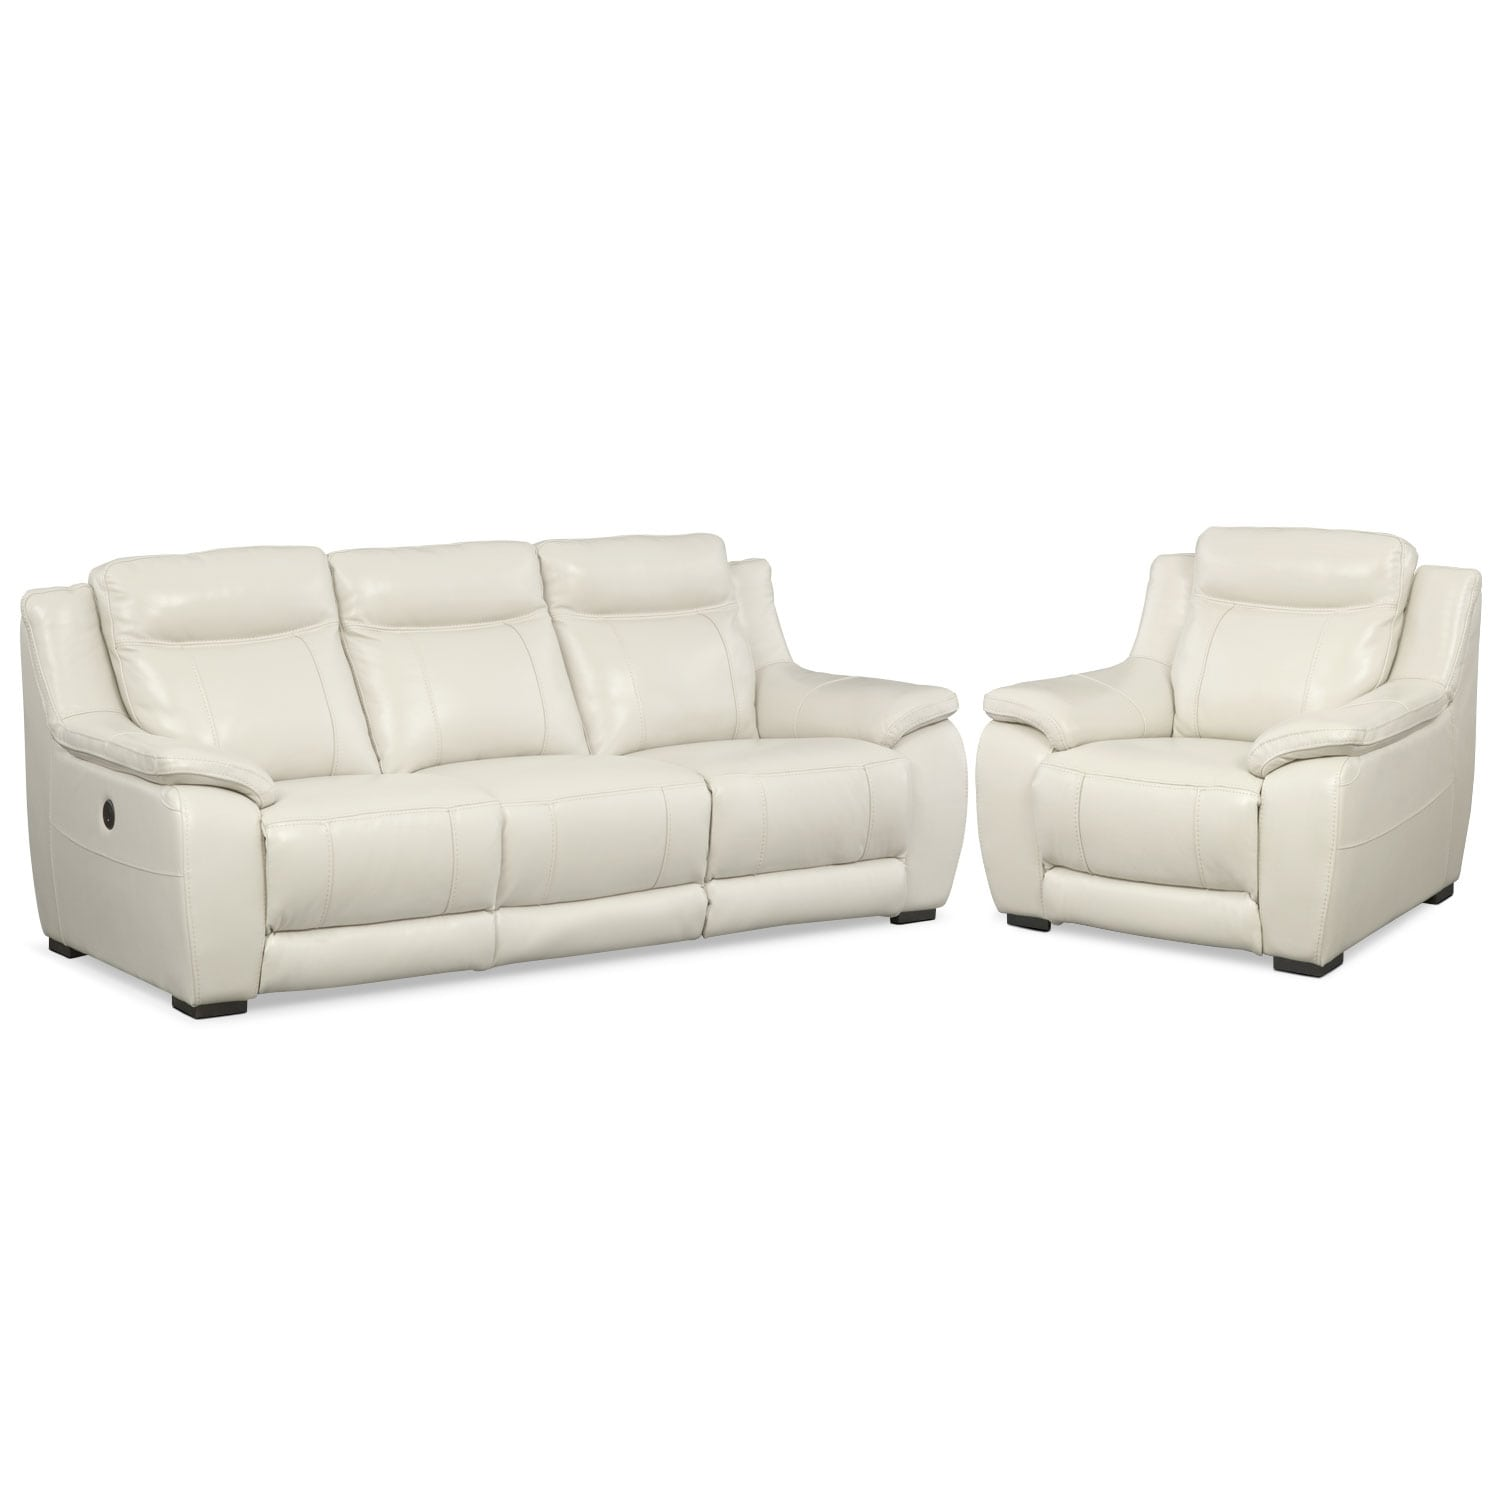 Living Room Furniture - Lido Ivory Power Reclining 2 Pc. Living Room w/ Power Recliner